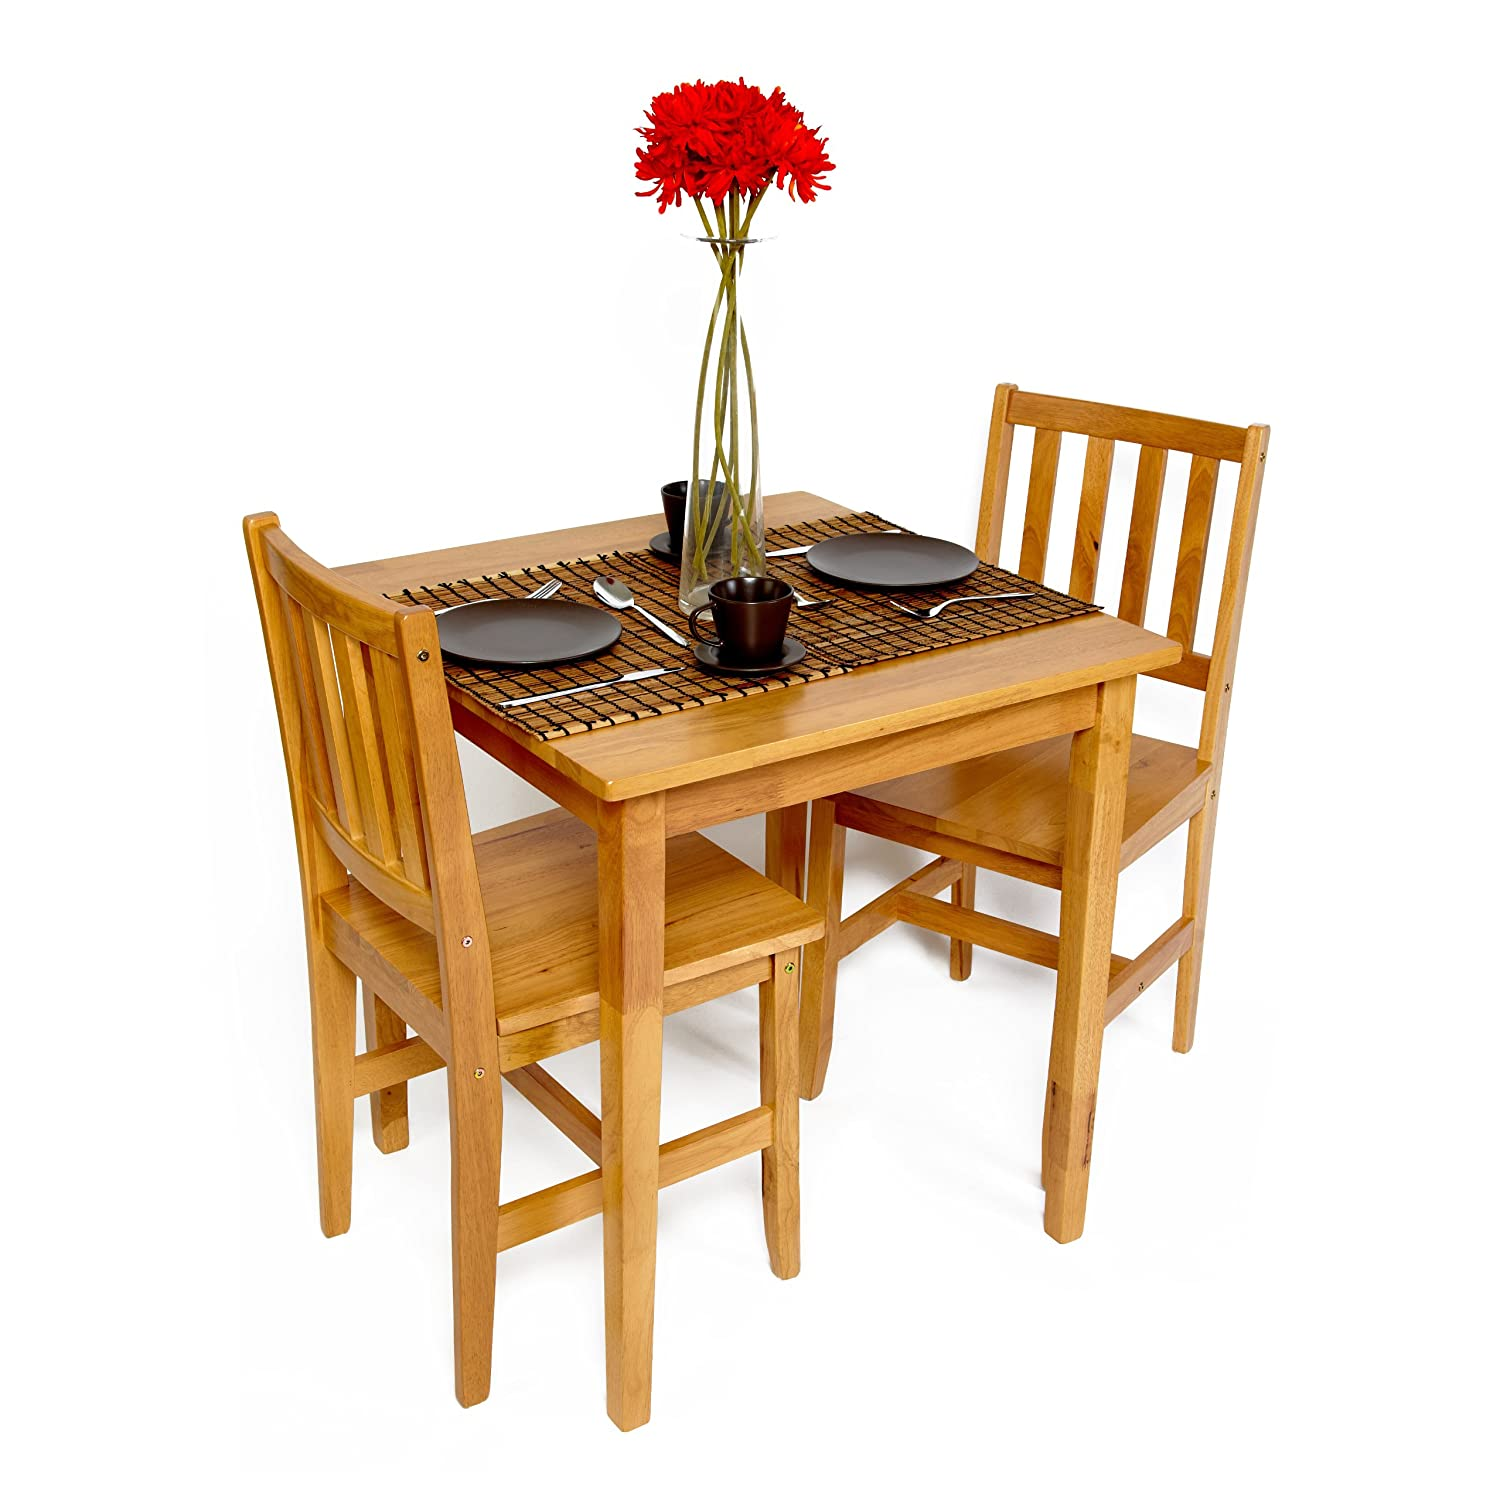 Table and chairs set dining bistro small cafe tables wood for Kitchen table and chairs set for sale